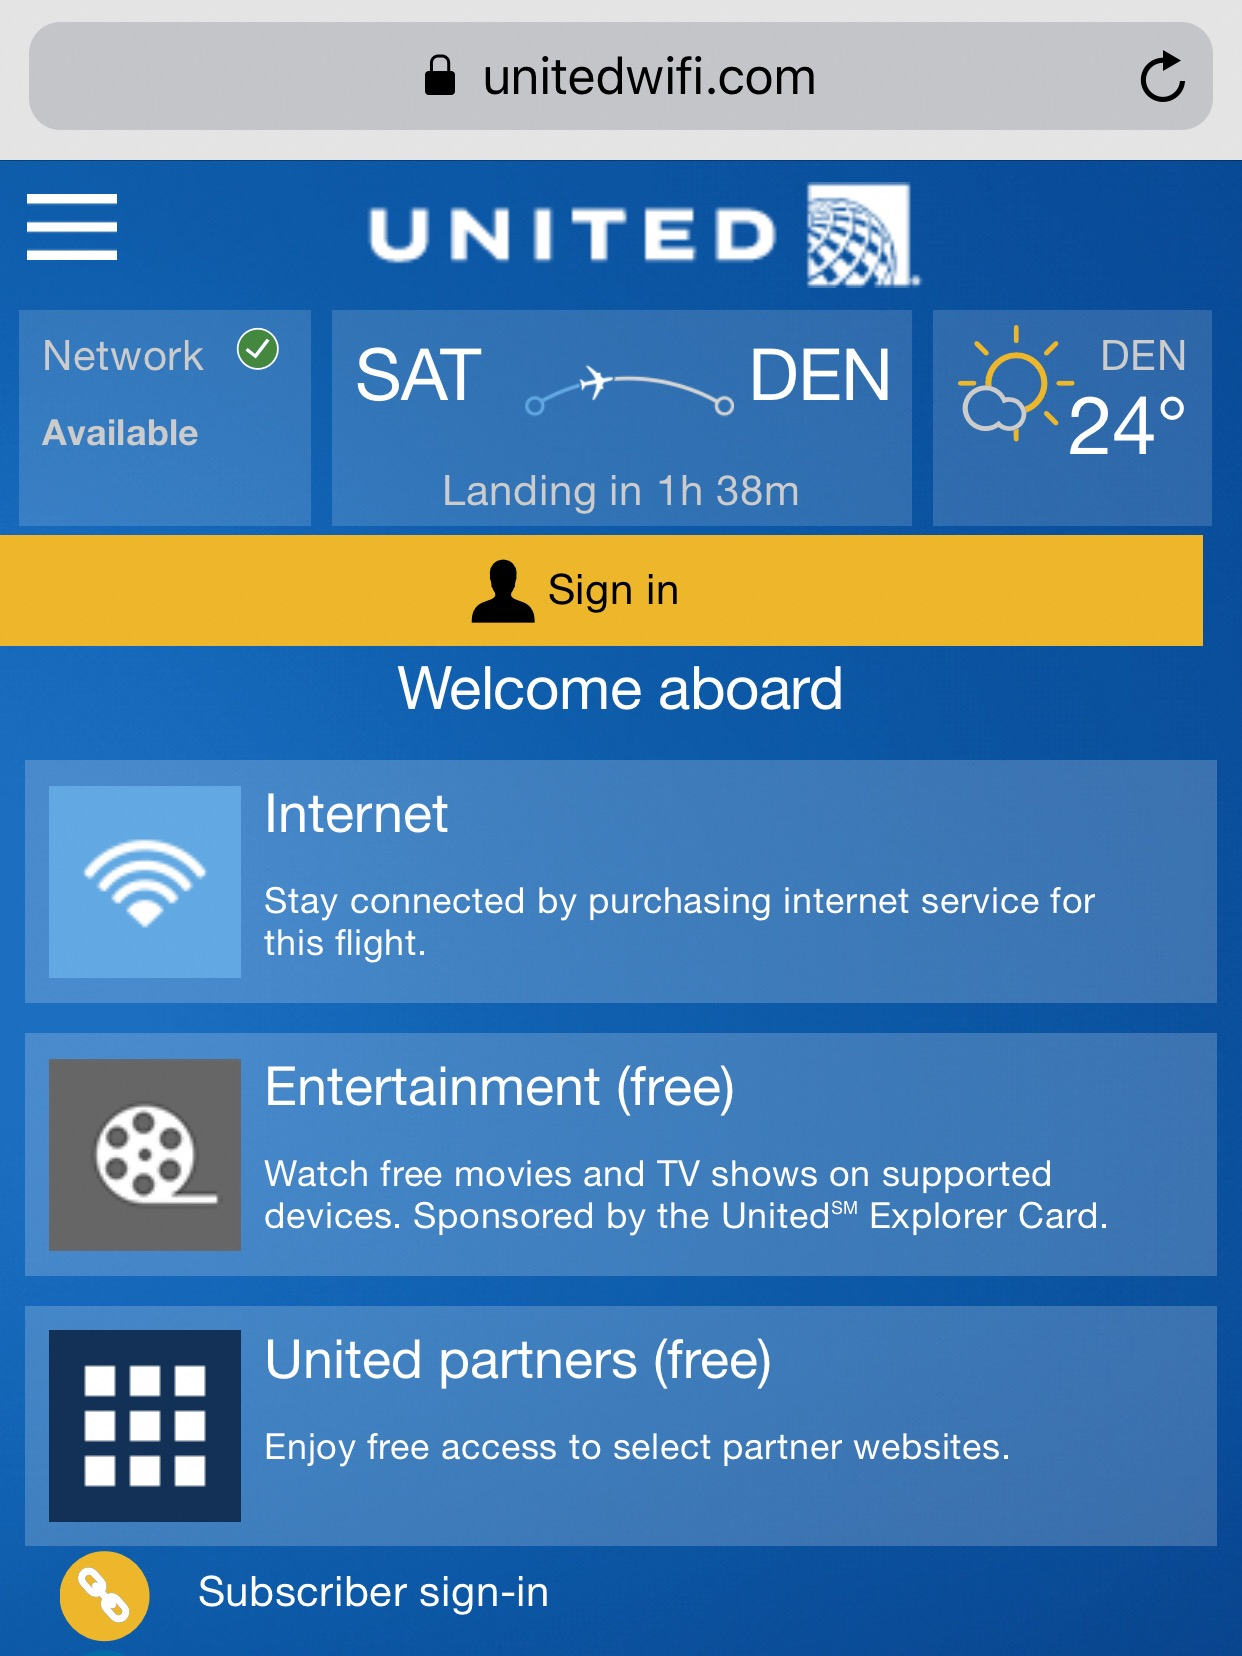 United offers inflight wifi, with complimentary entertainment, complimentary access to certain websites, and complimentary access to united.com.